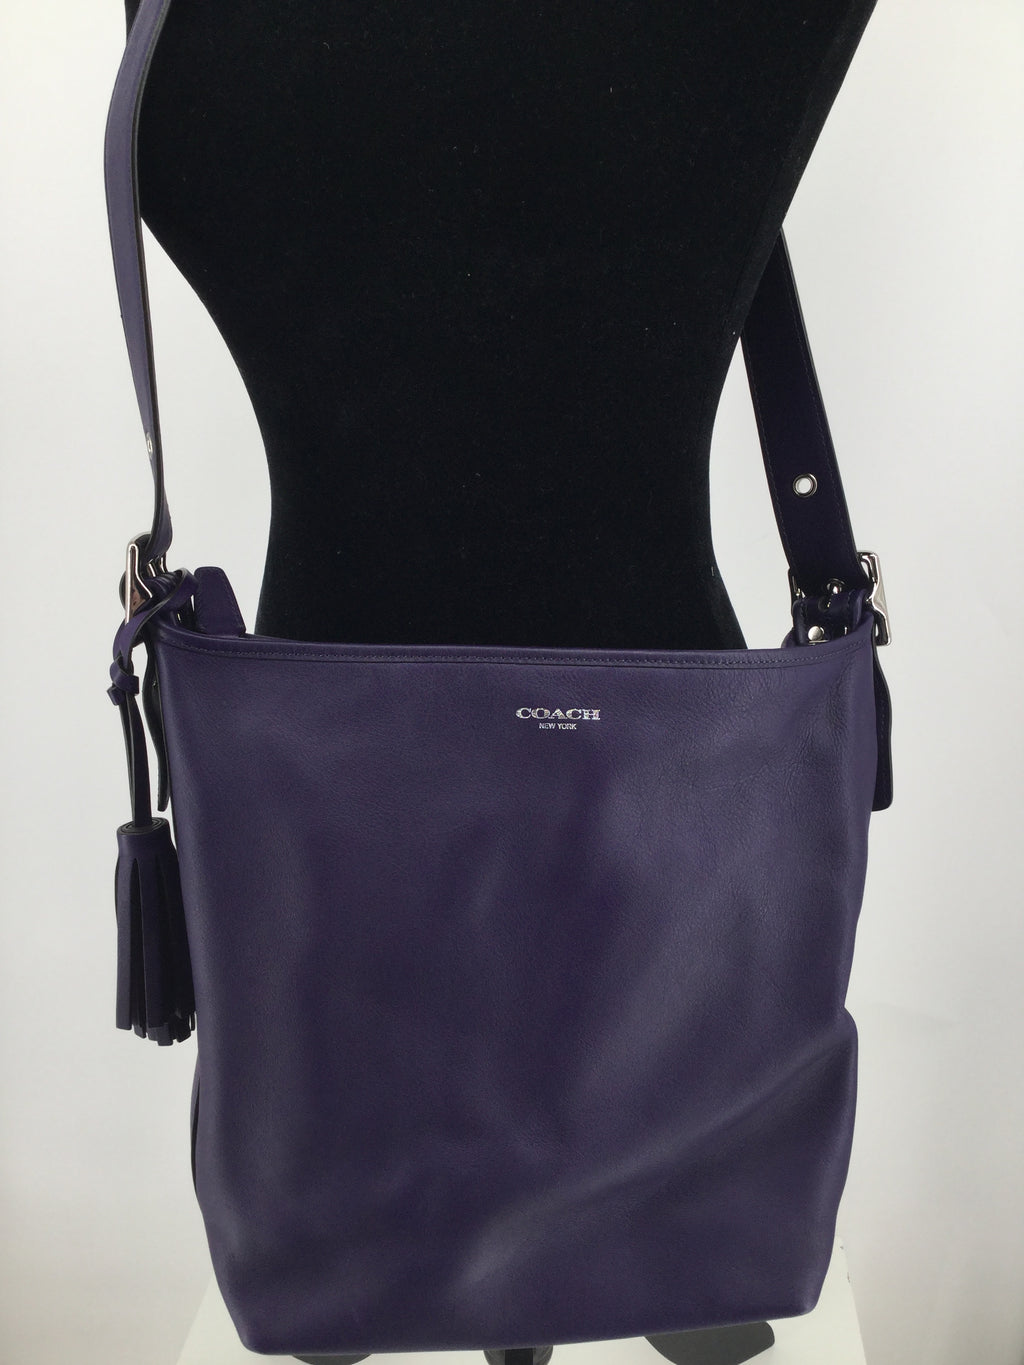 COACH LEGACY LEATHER  PURPLE DUFFLE